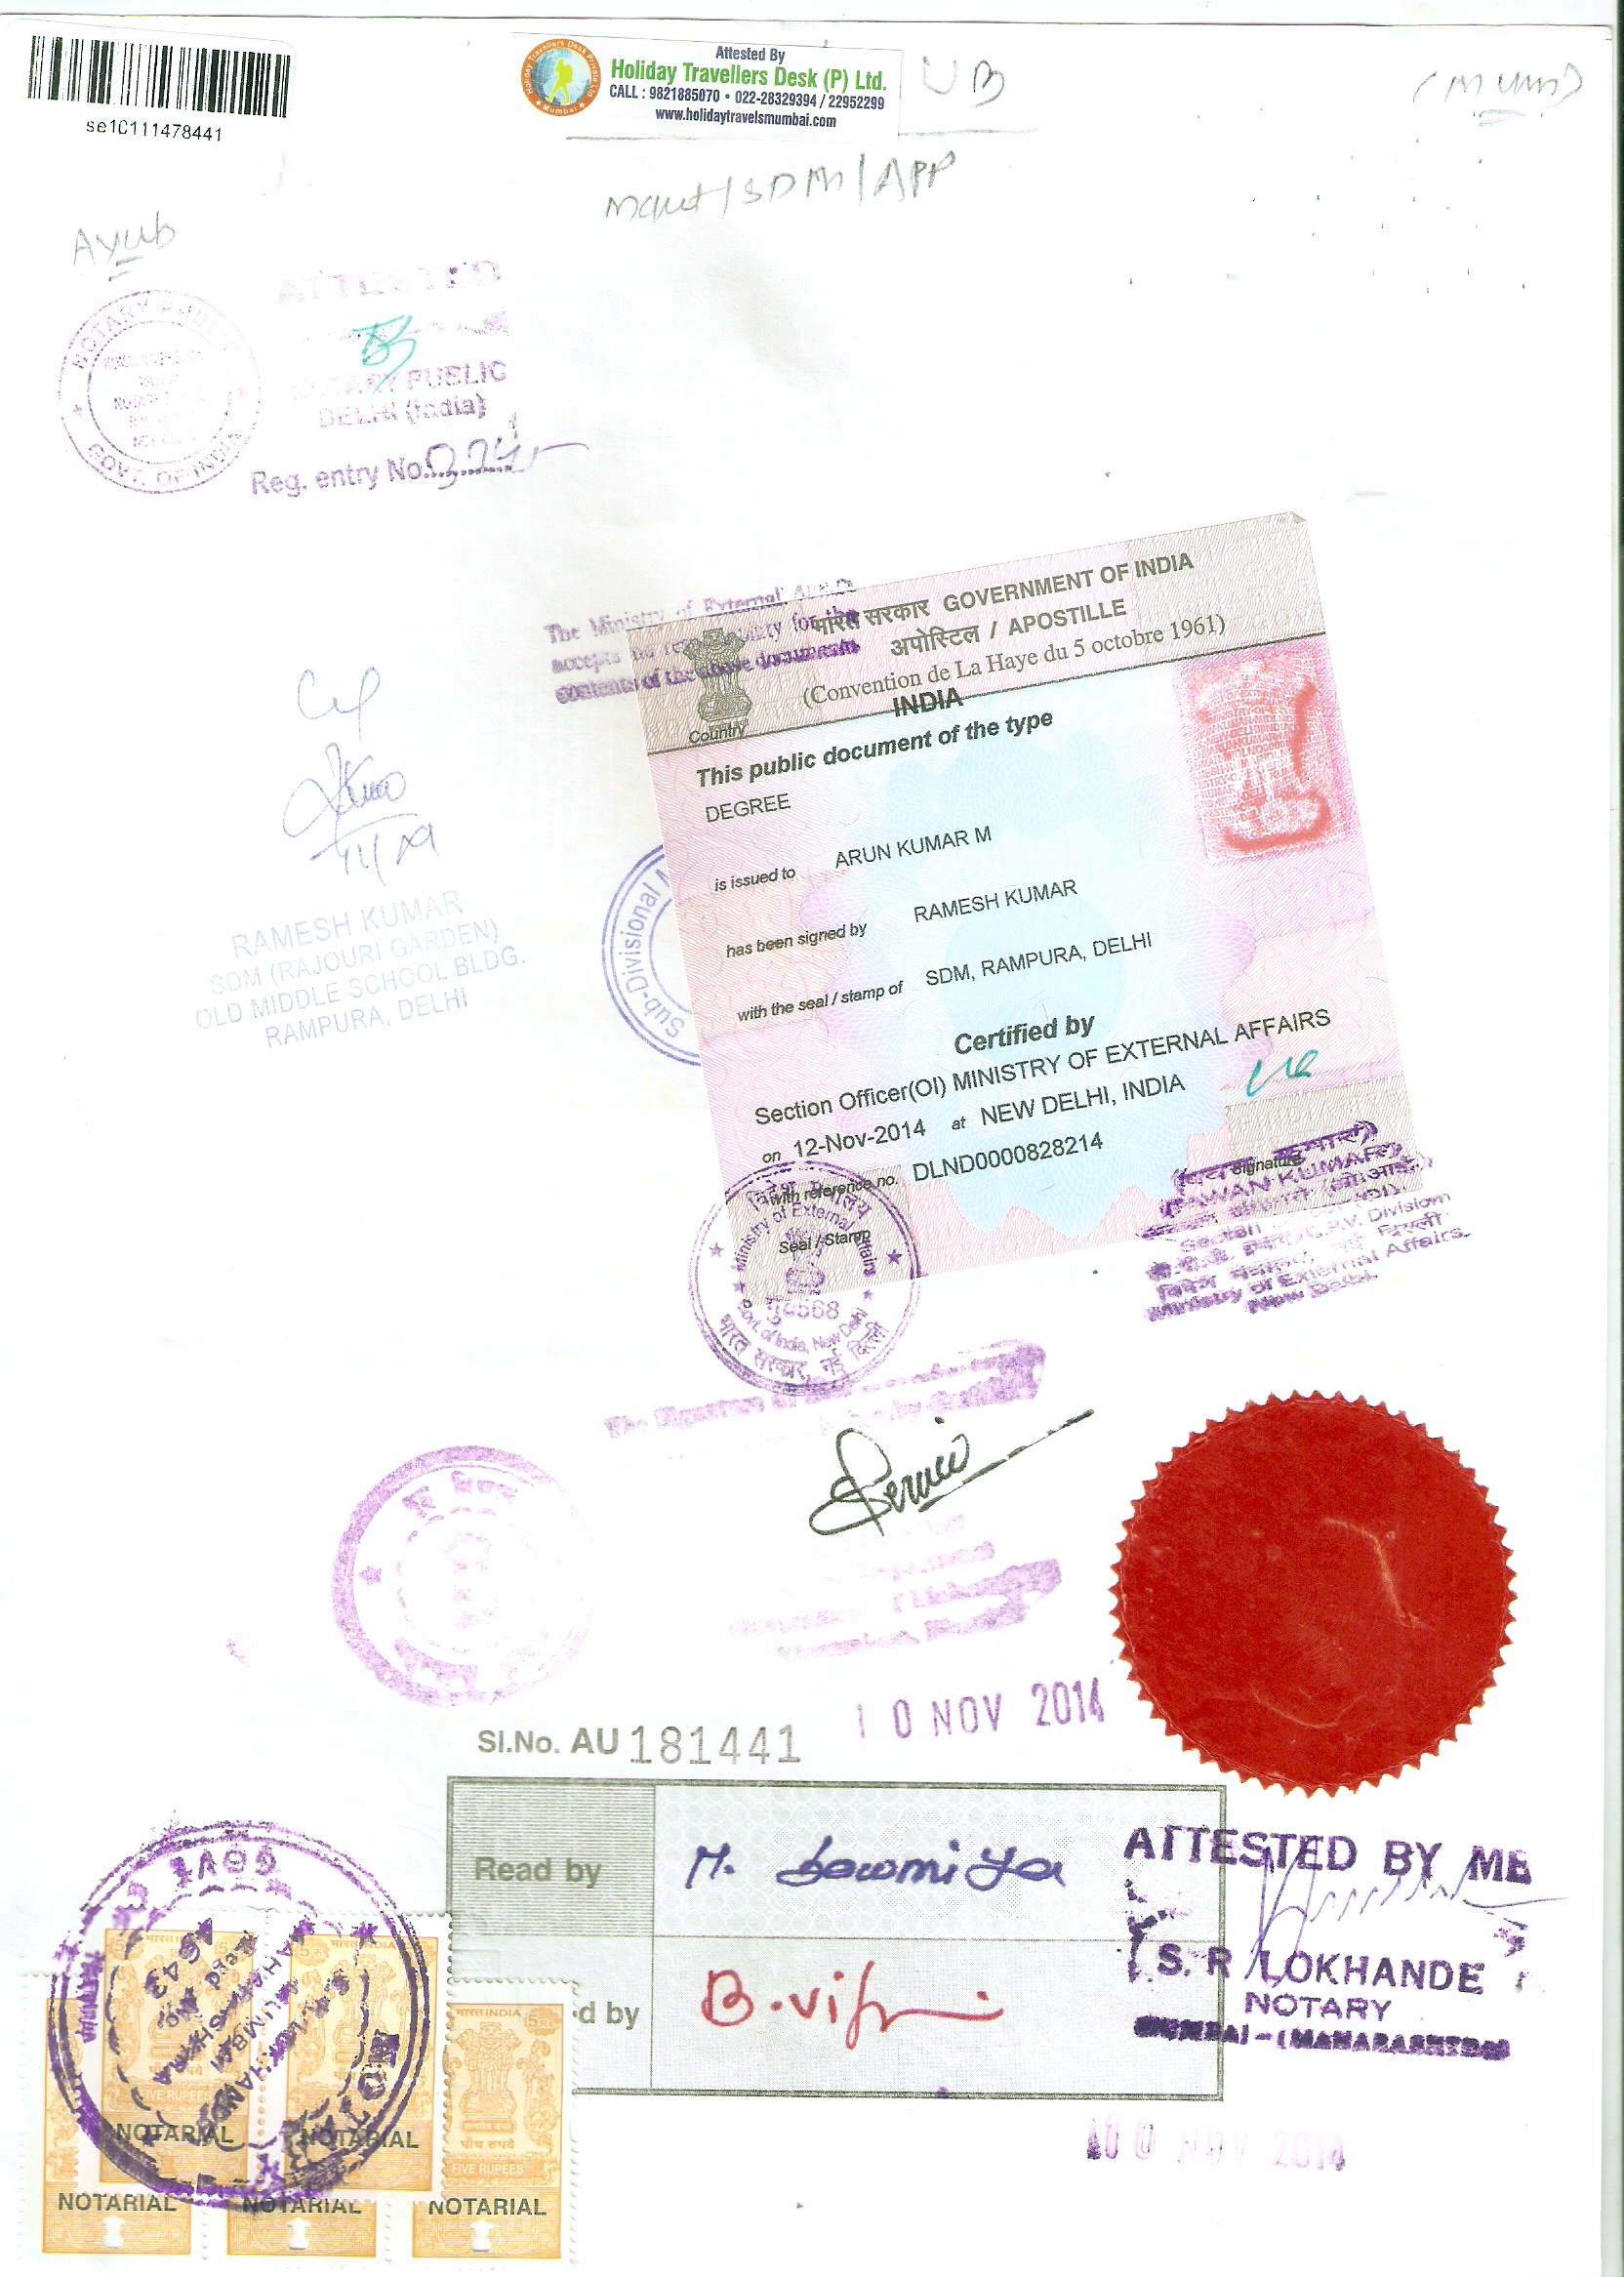 holiday travellers desk pvt marriage certificate apostille we provide apostille service like marriage certificate apostille birth certificate apostille degree certificate apostille pcc certificate apostille passport